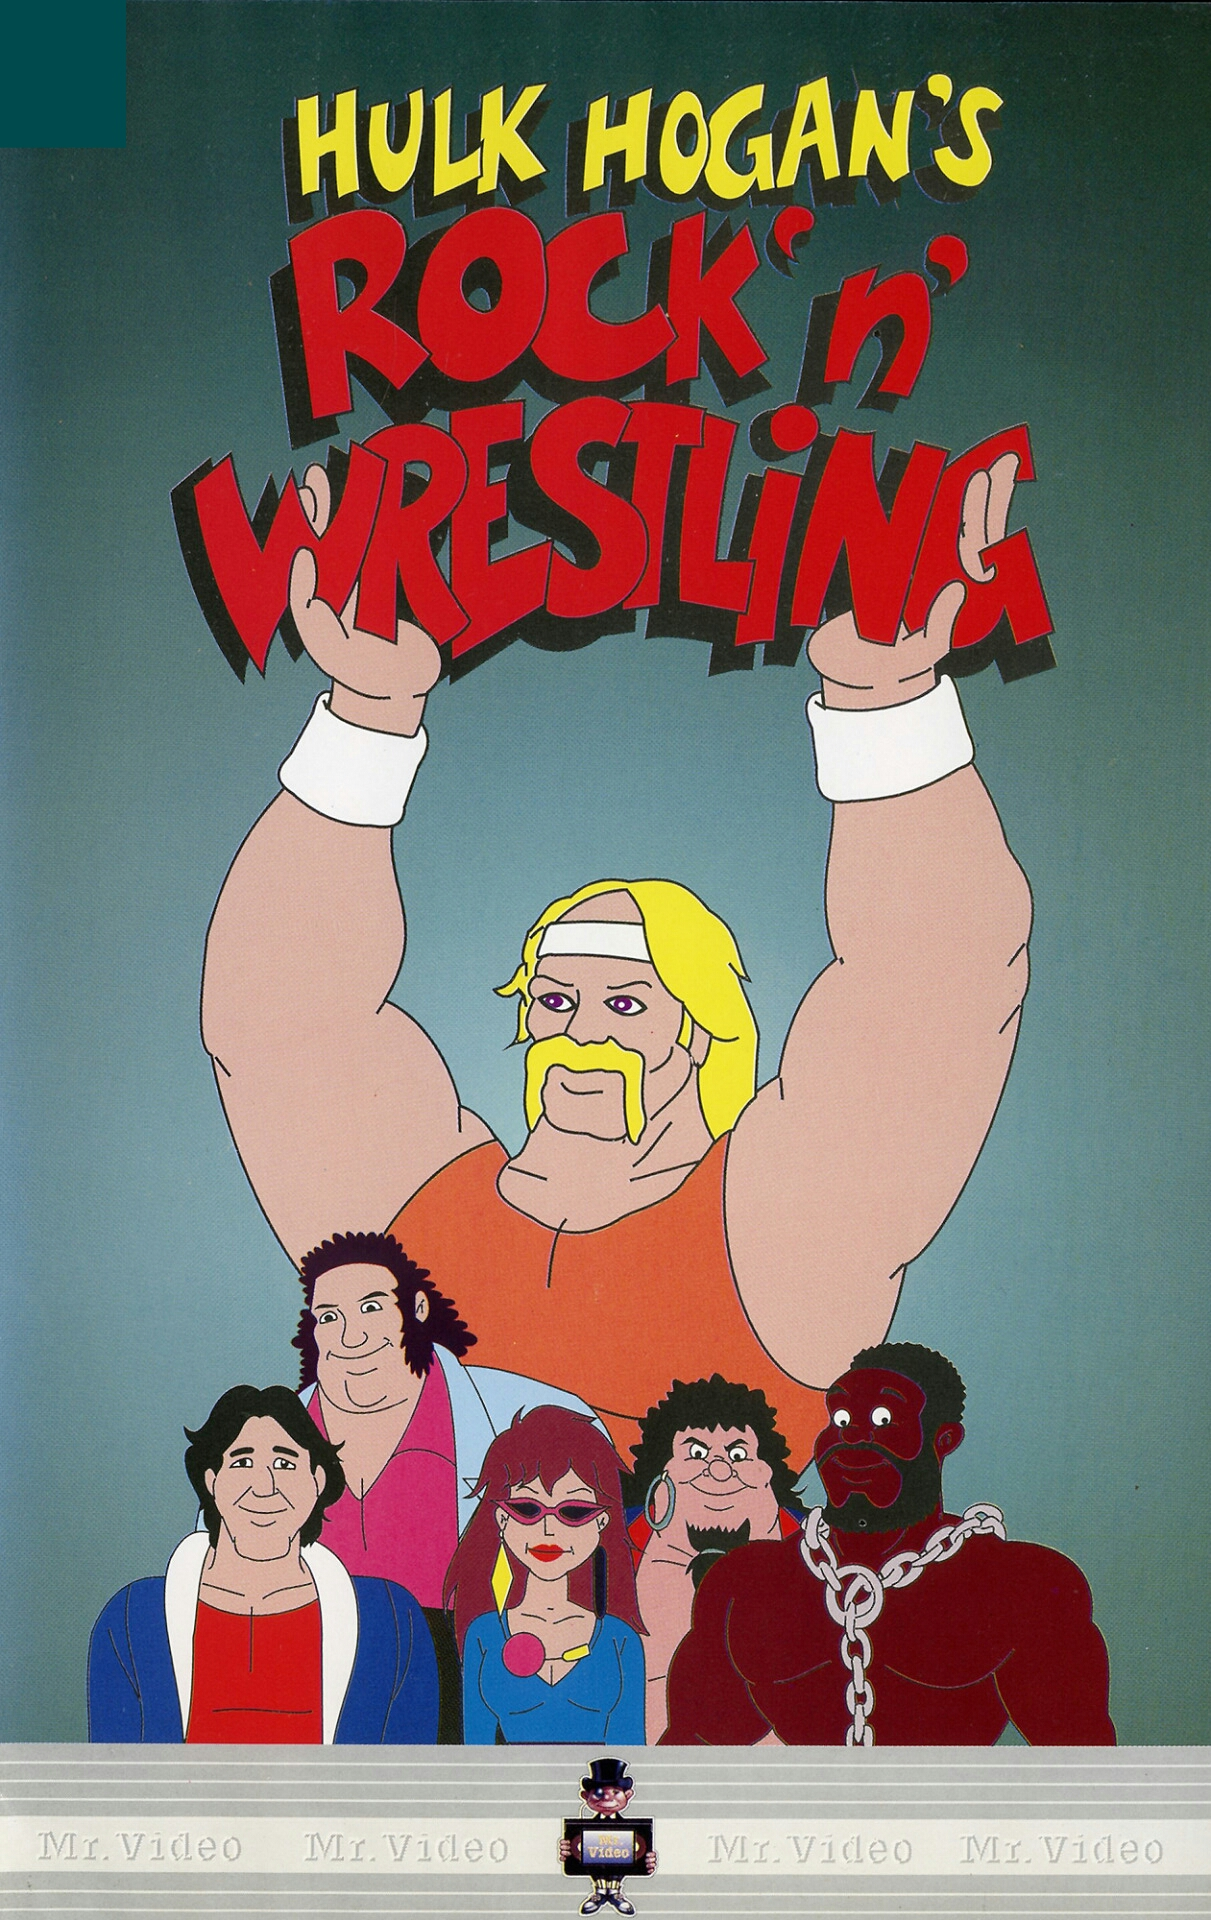 Hulk Hogan's Rock 'n' Wrestling (TV Series 1985–1986) - IMDb